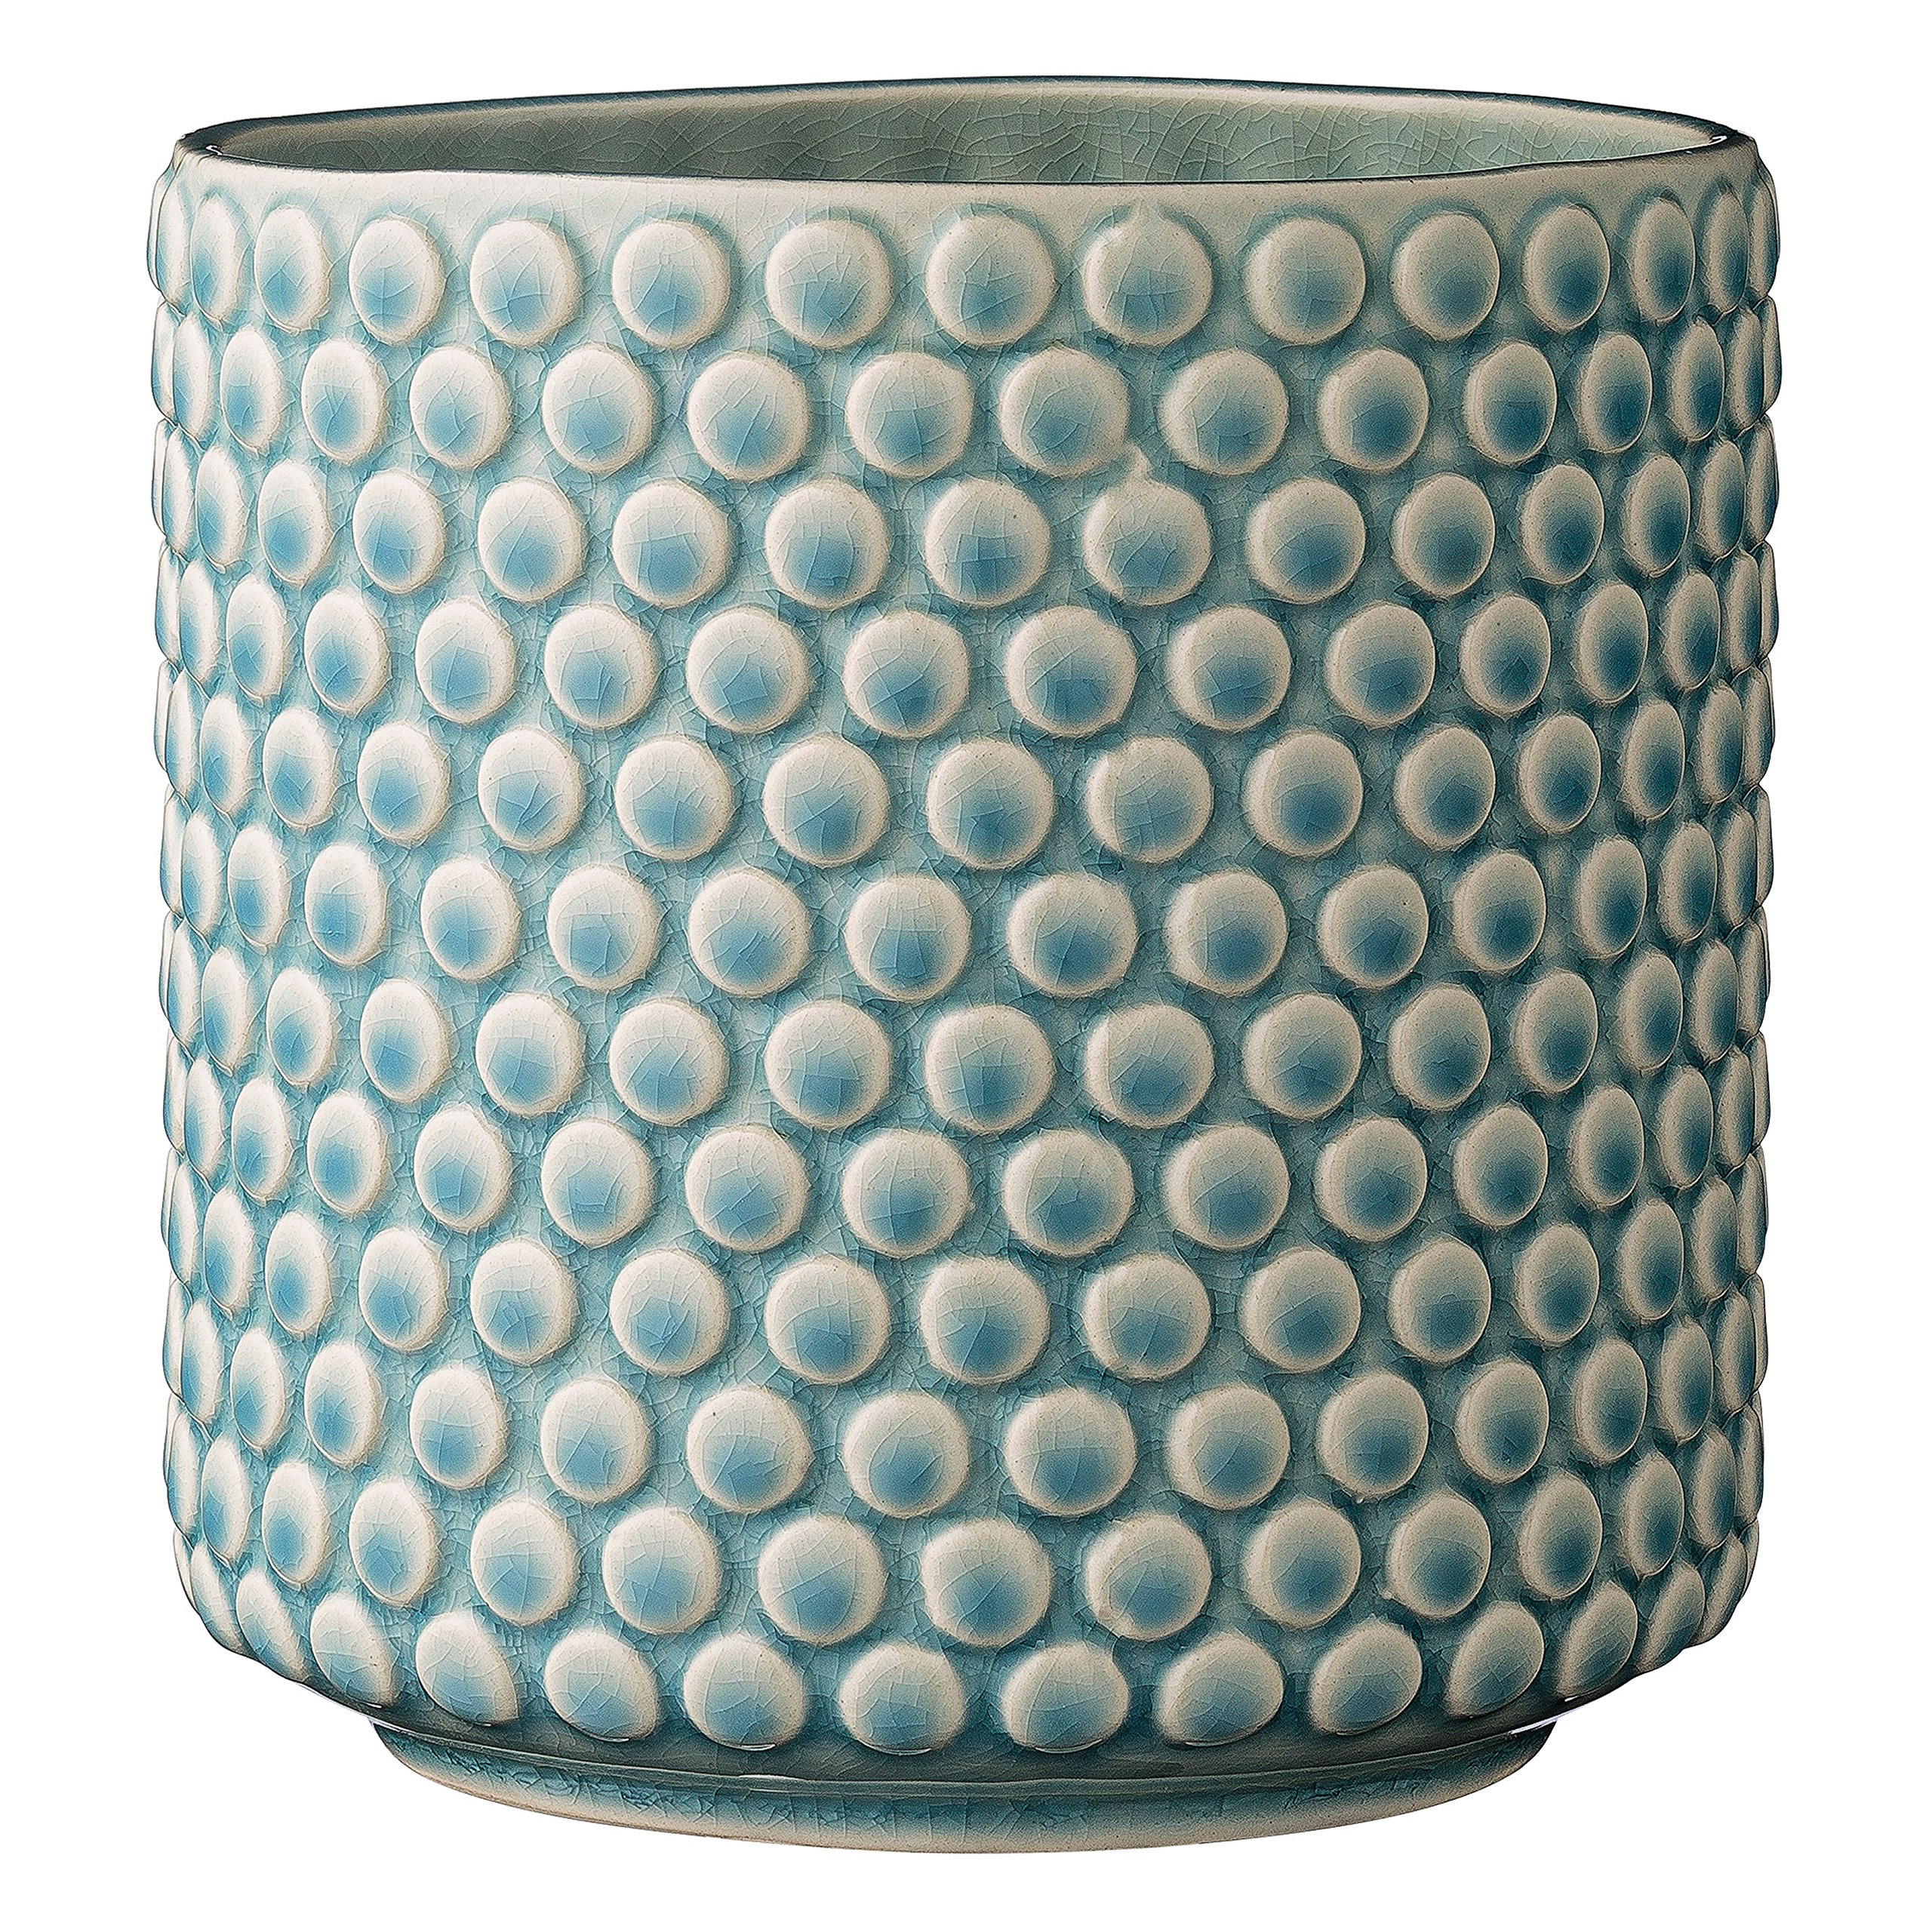 "Bloomingville A75100047 Stoneware Pot with Raised Polka Dot Design, 6"", Sky Blue"